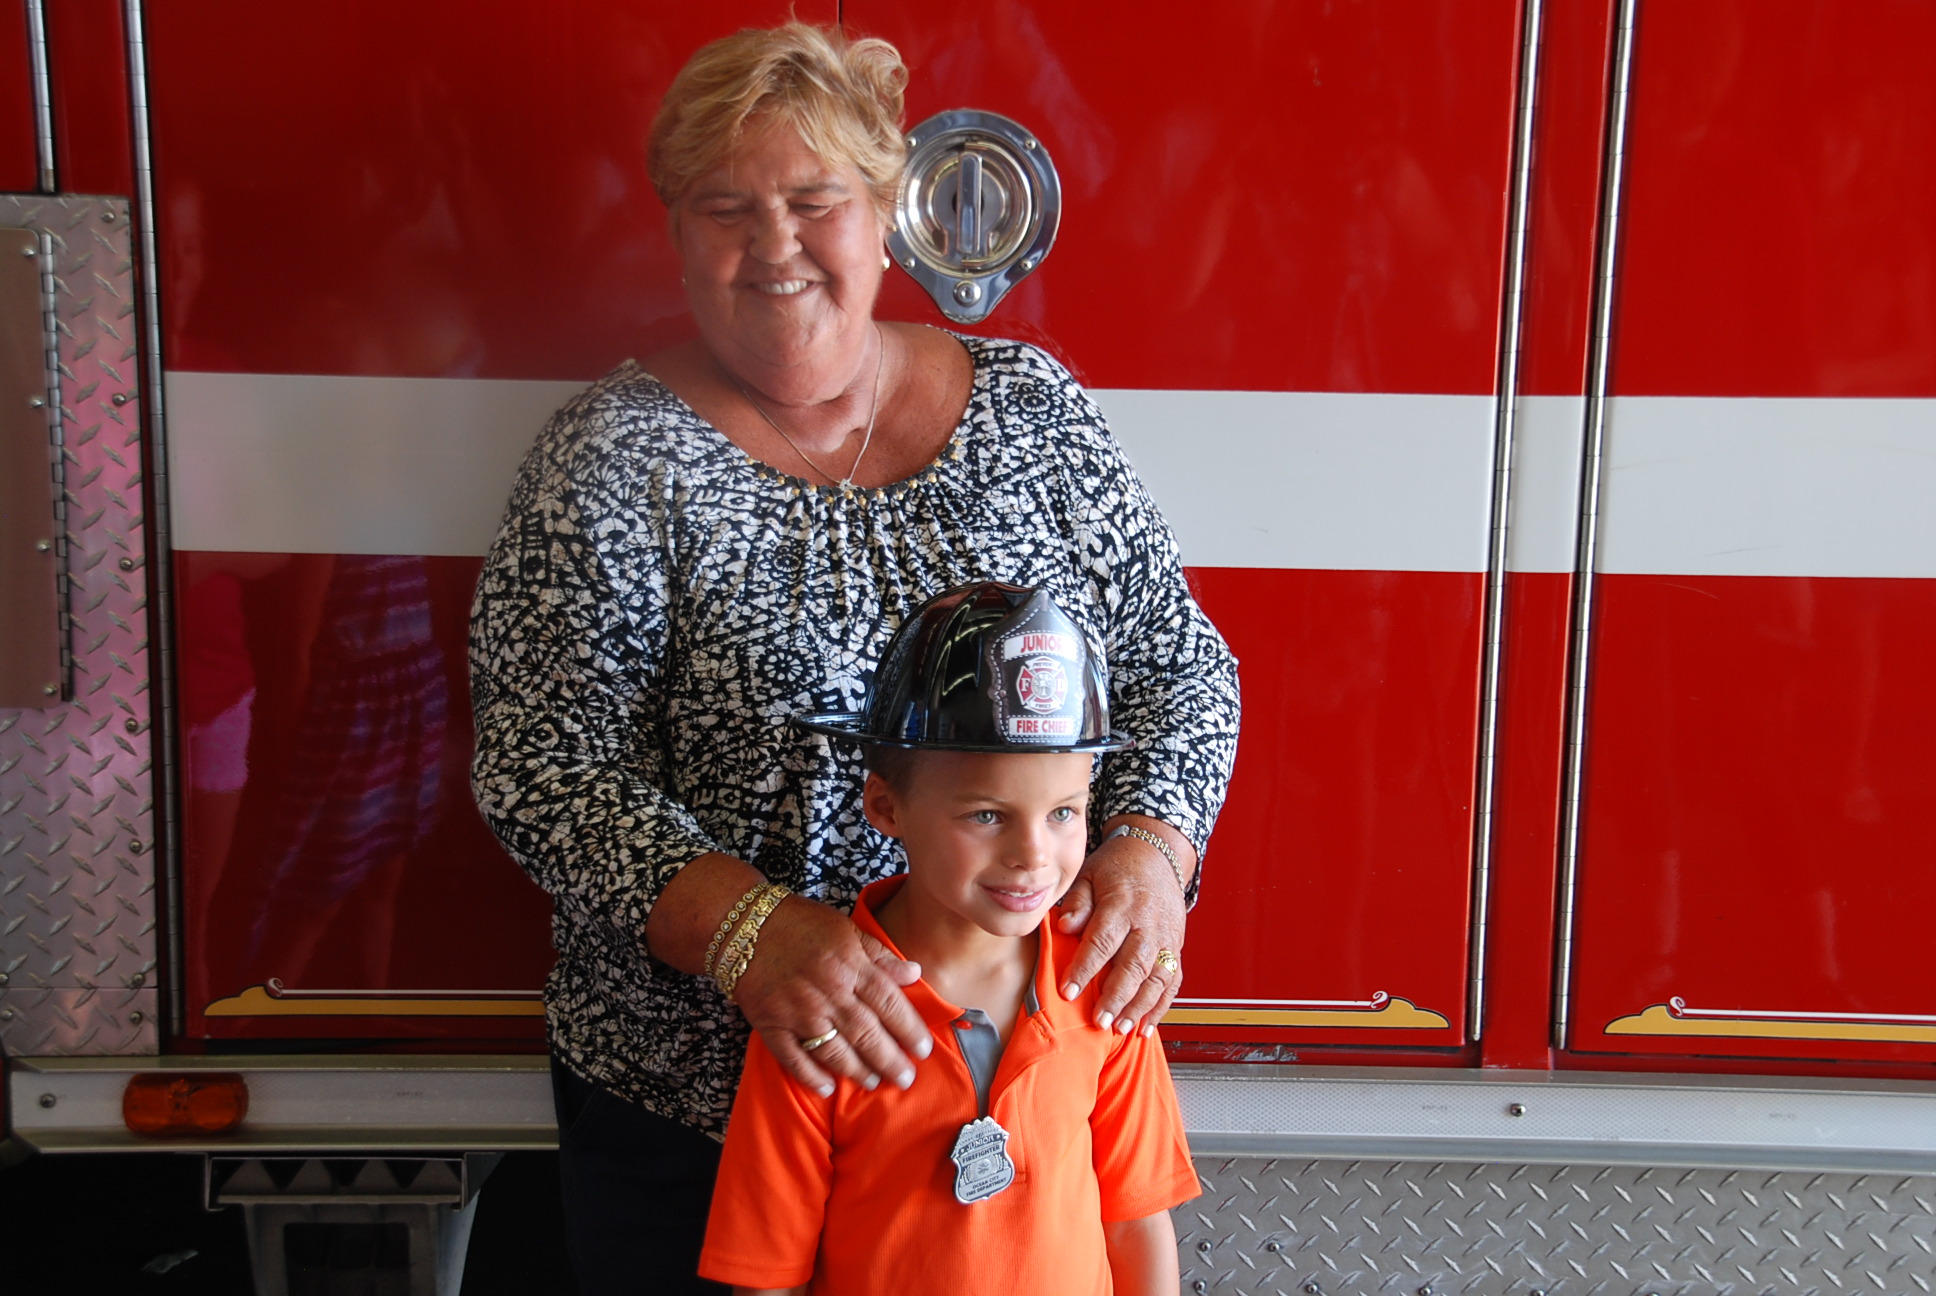 Mason Farr, 7, is pictured with his aunt, Jenny, at this morning's event honoring his heroic actions in May. Photo by Shawn Soper